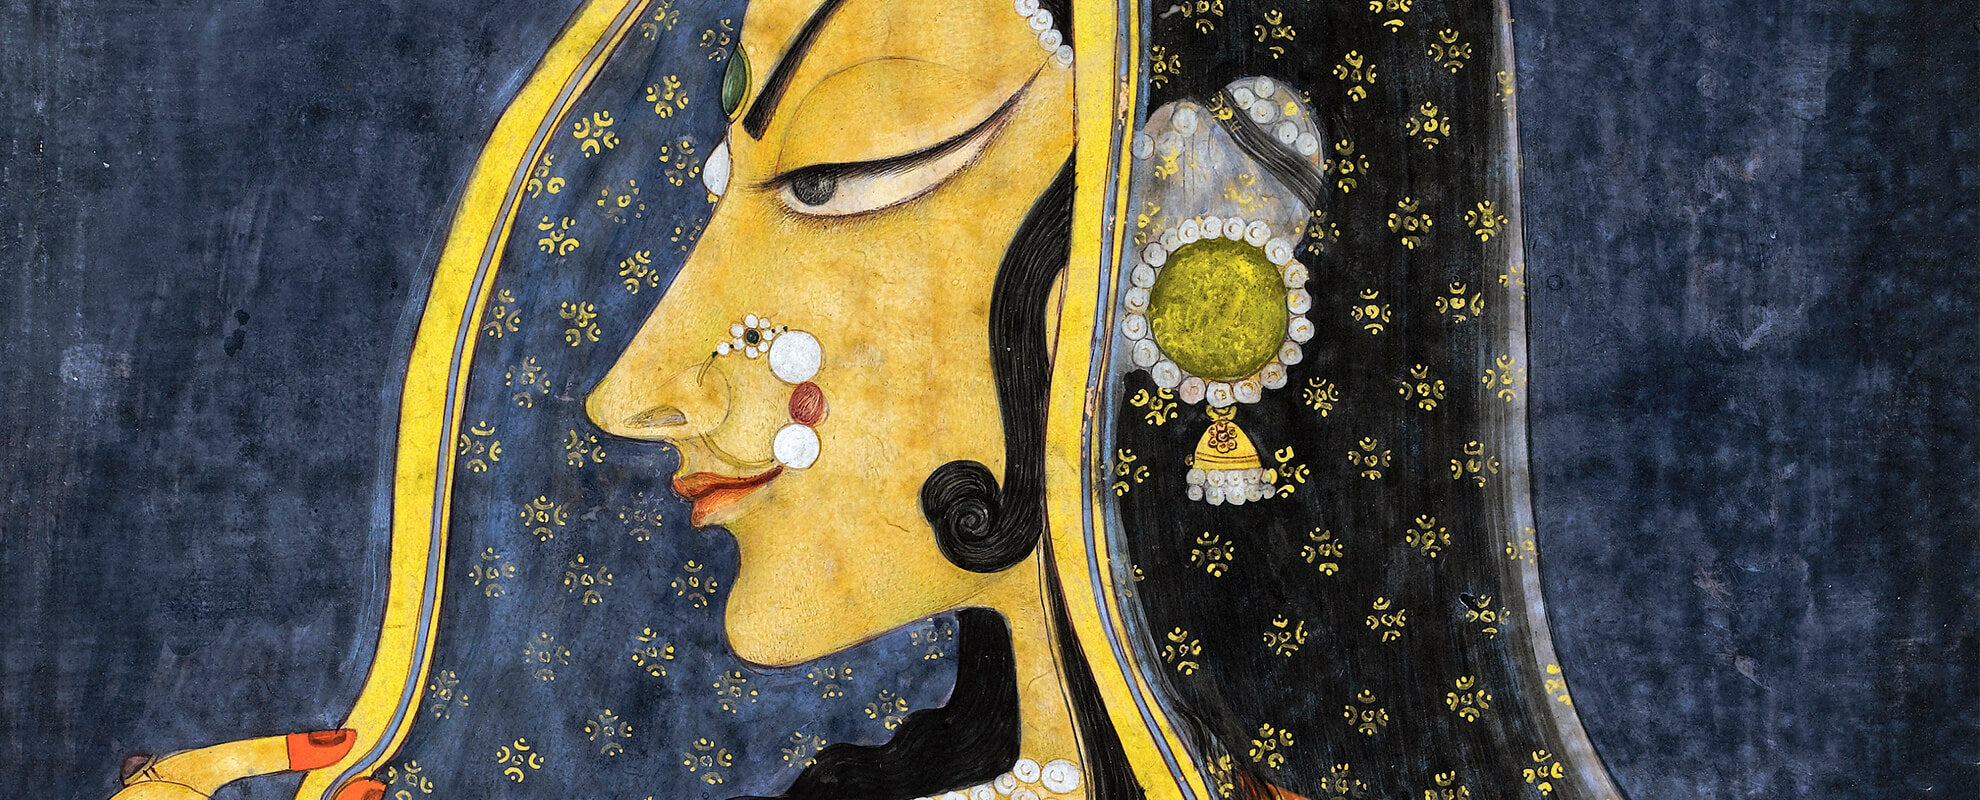 Indian Art — Indian Religious Painting | Buy Posters, Frames, Canvas, Digital Art & Large Size Prints